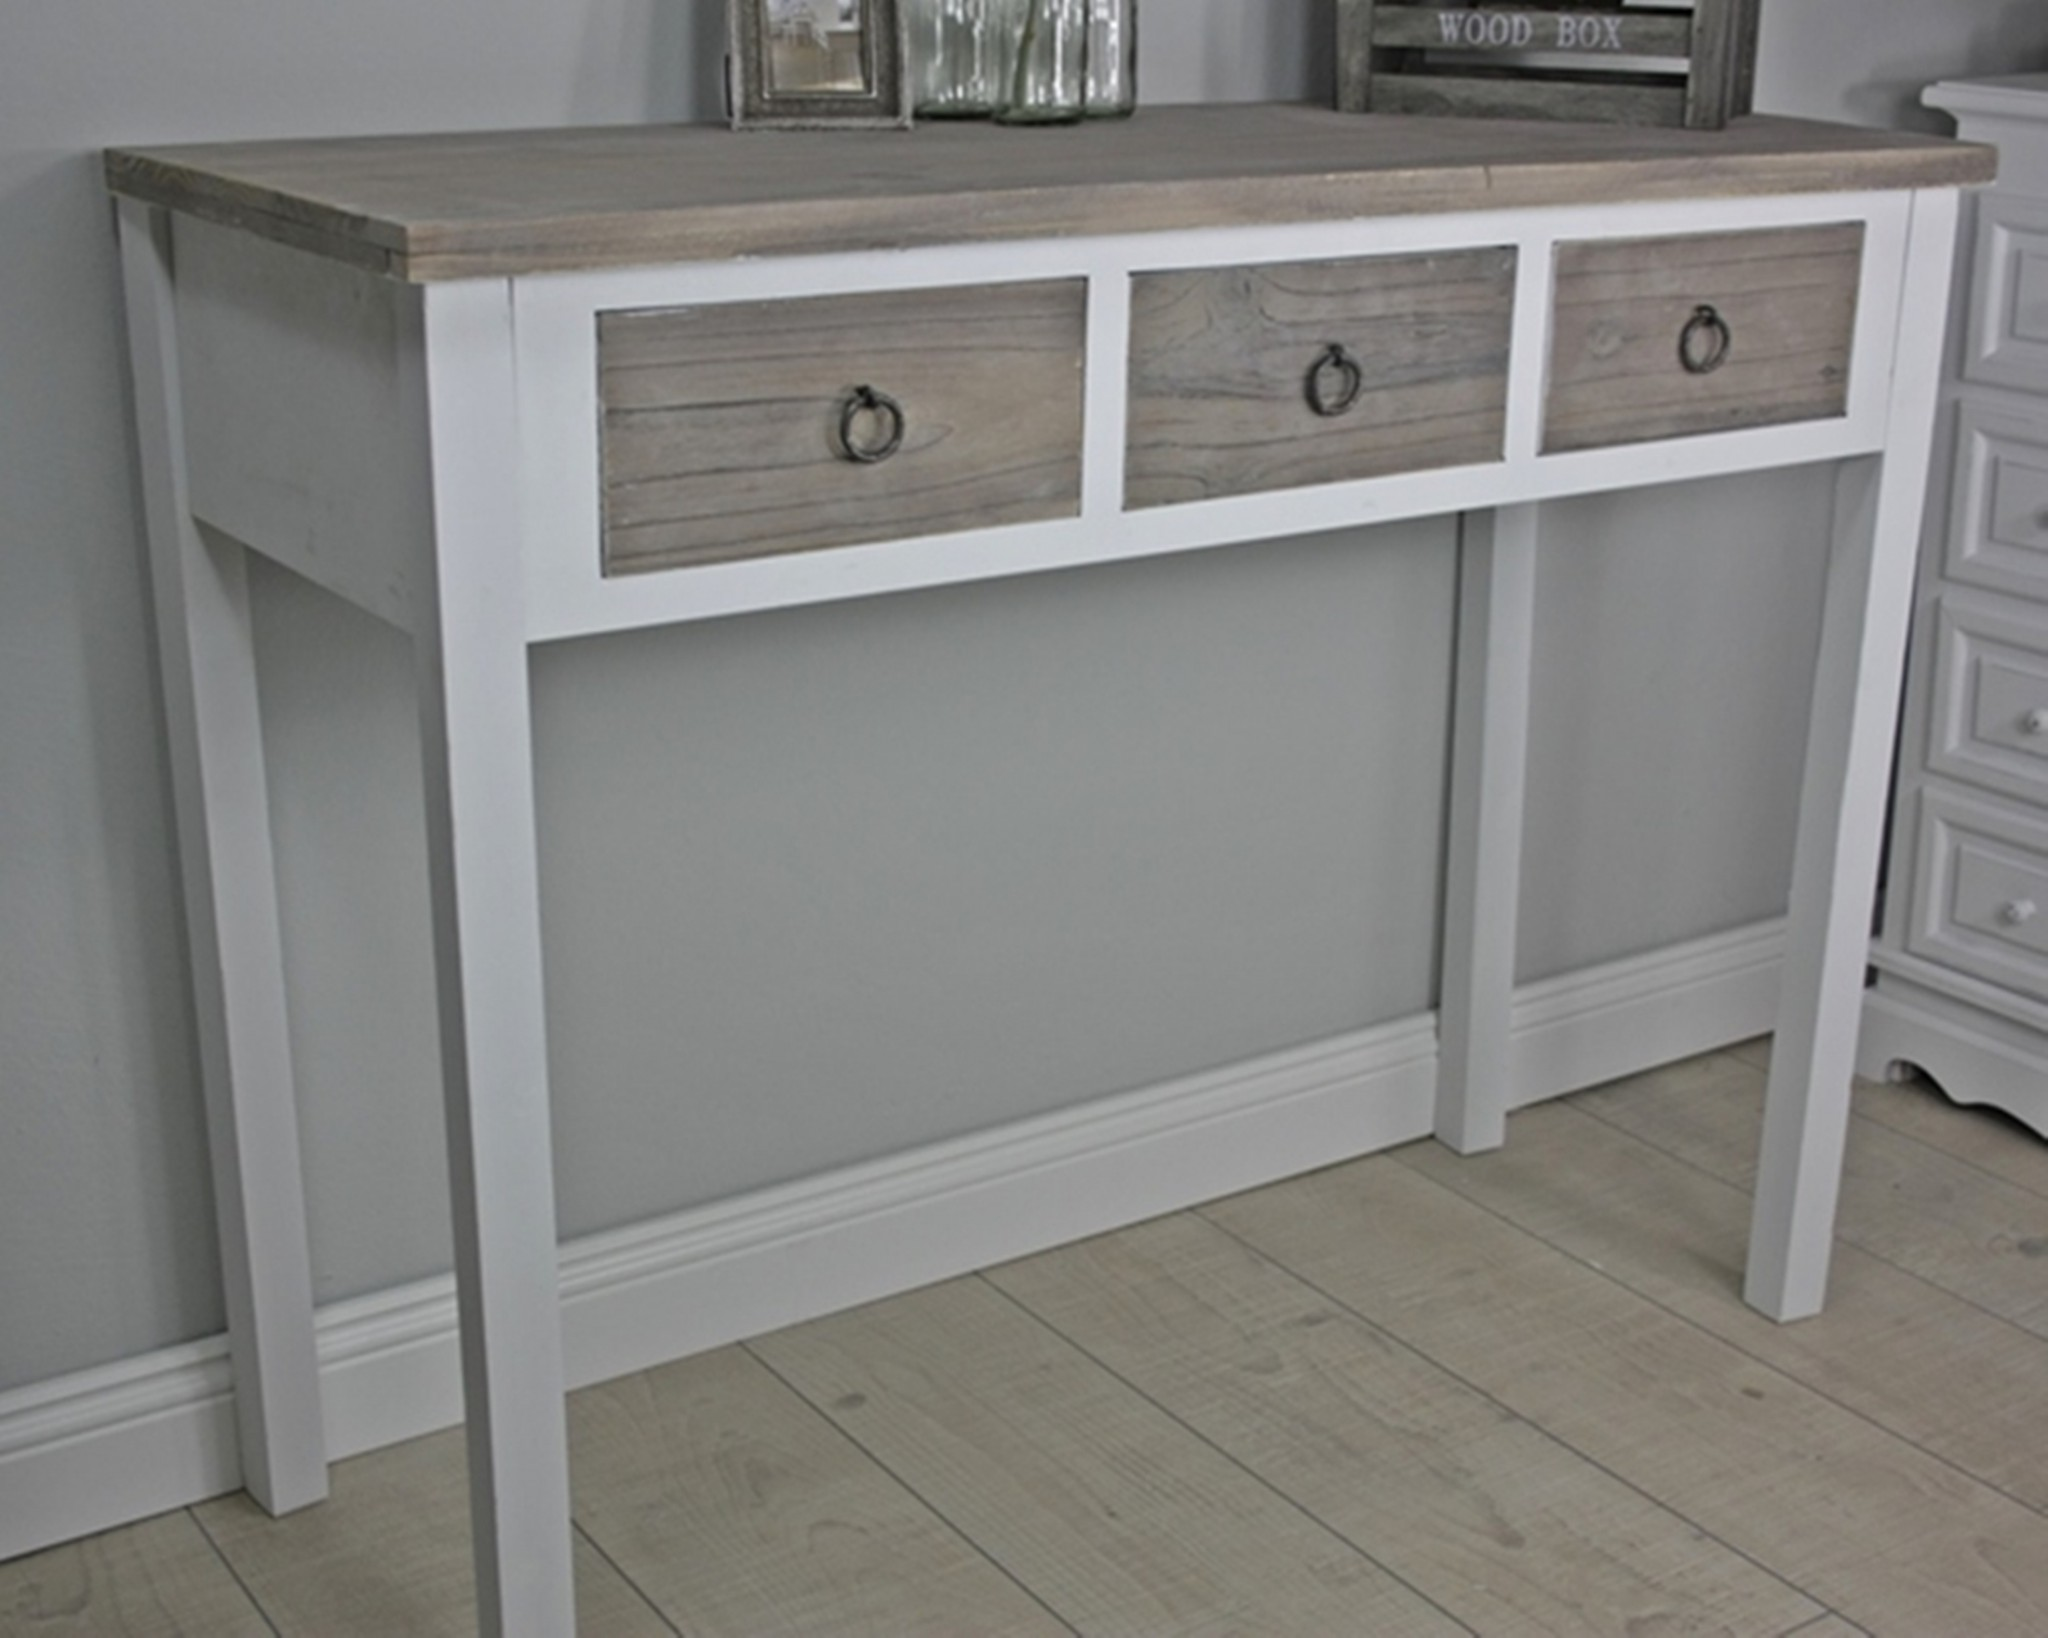 console sideboard secretary desk white wood brown country. Black Bedroom Furniture Sets. Home Design Ideas